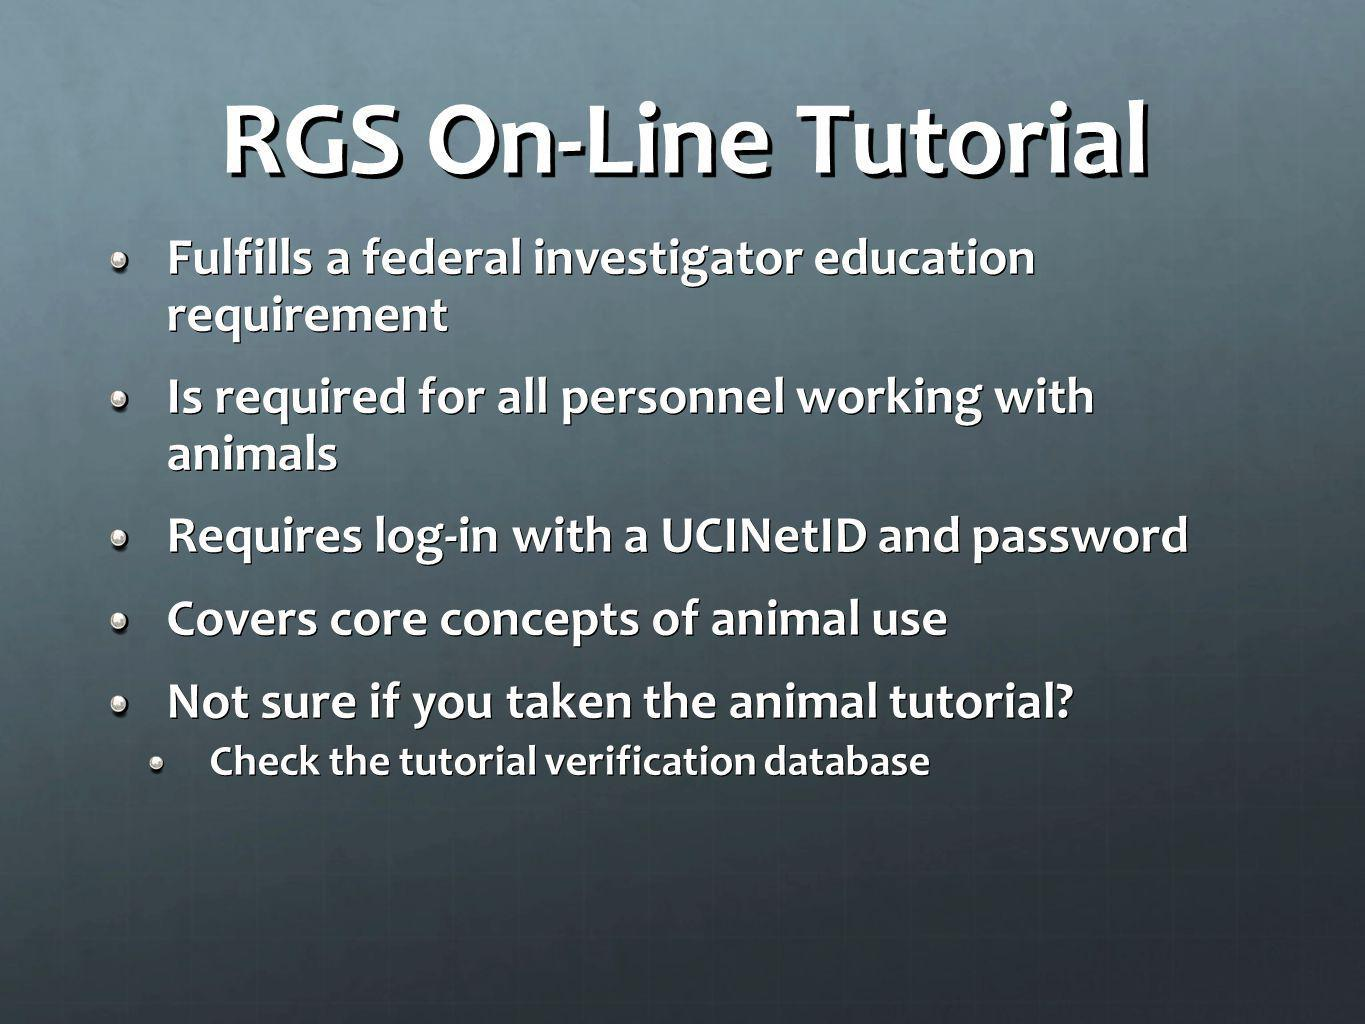 RGS On-Line Tutorial Fulfills a federal investigator education requirement. Is required for all personnel working with animals.